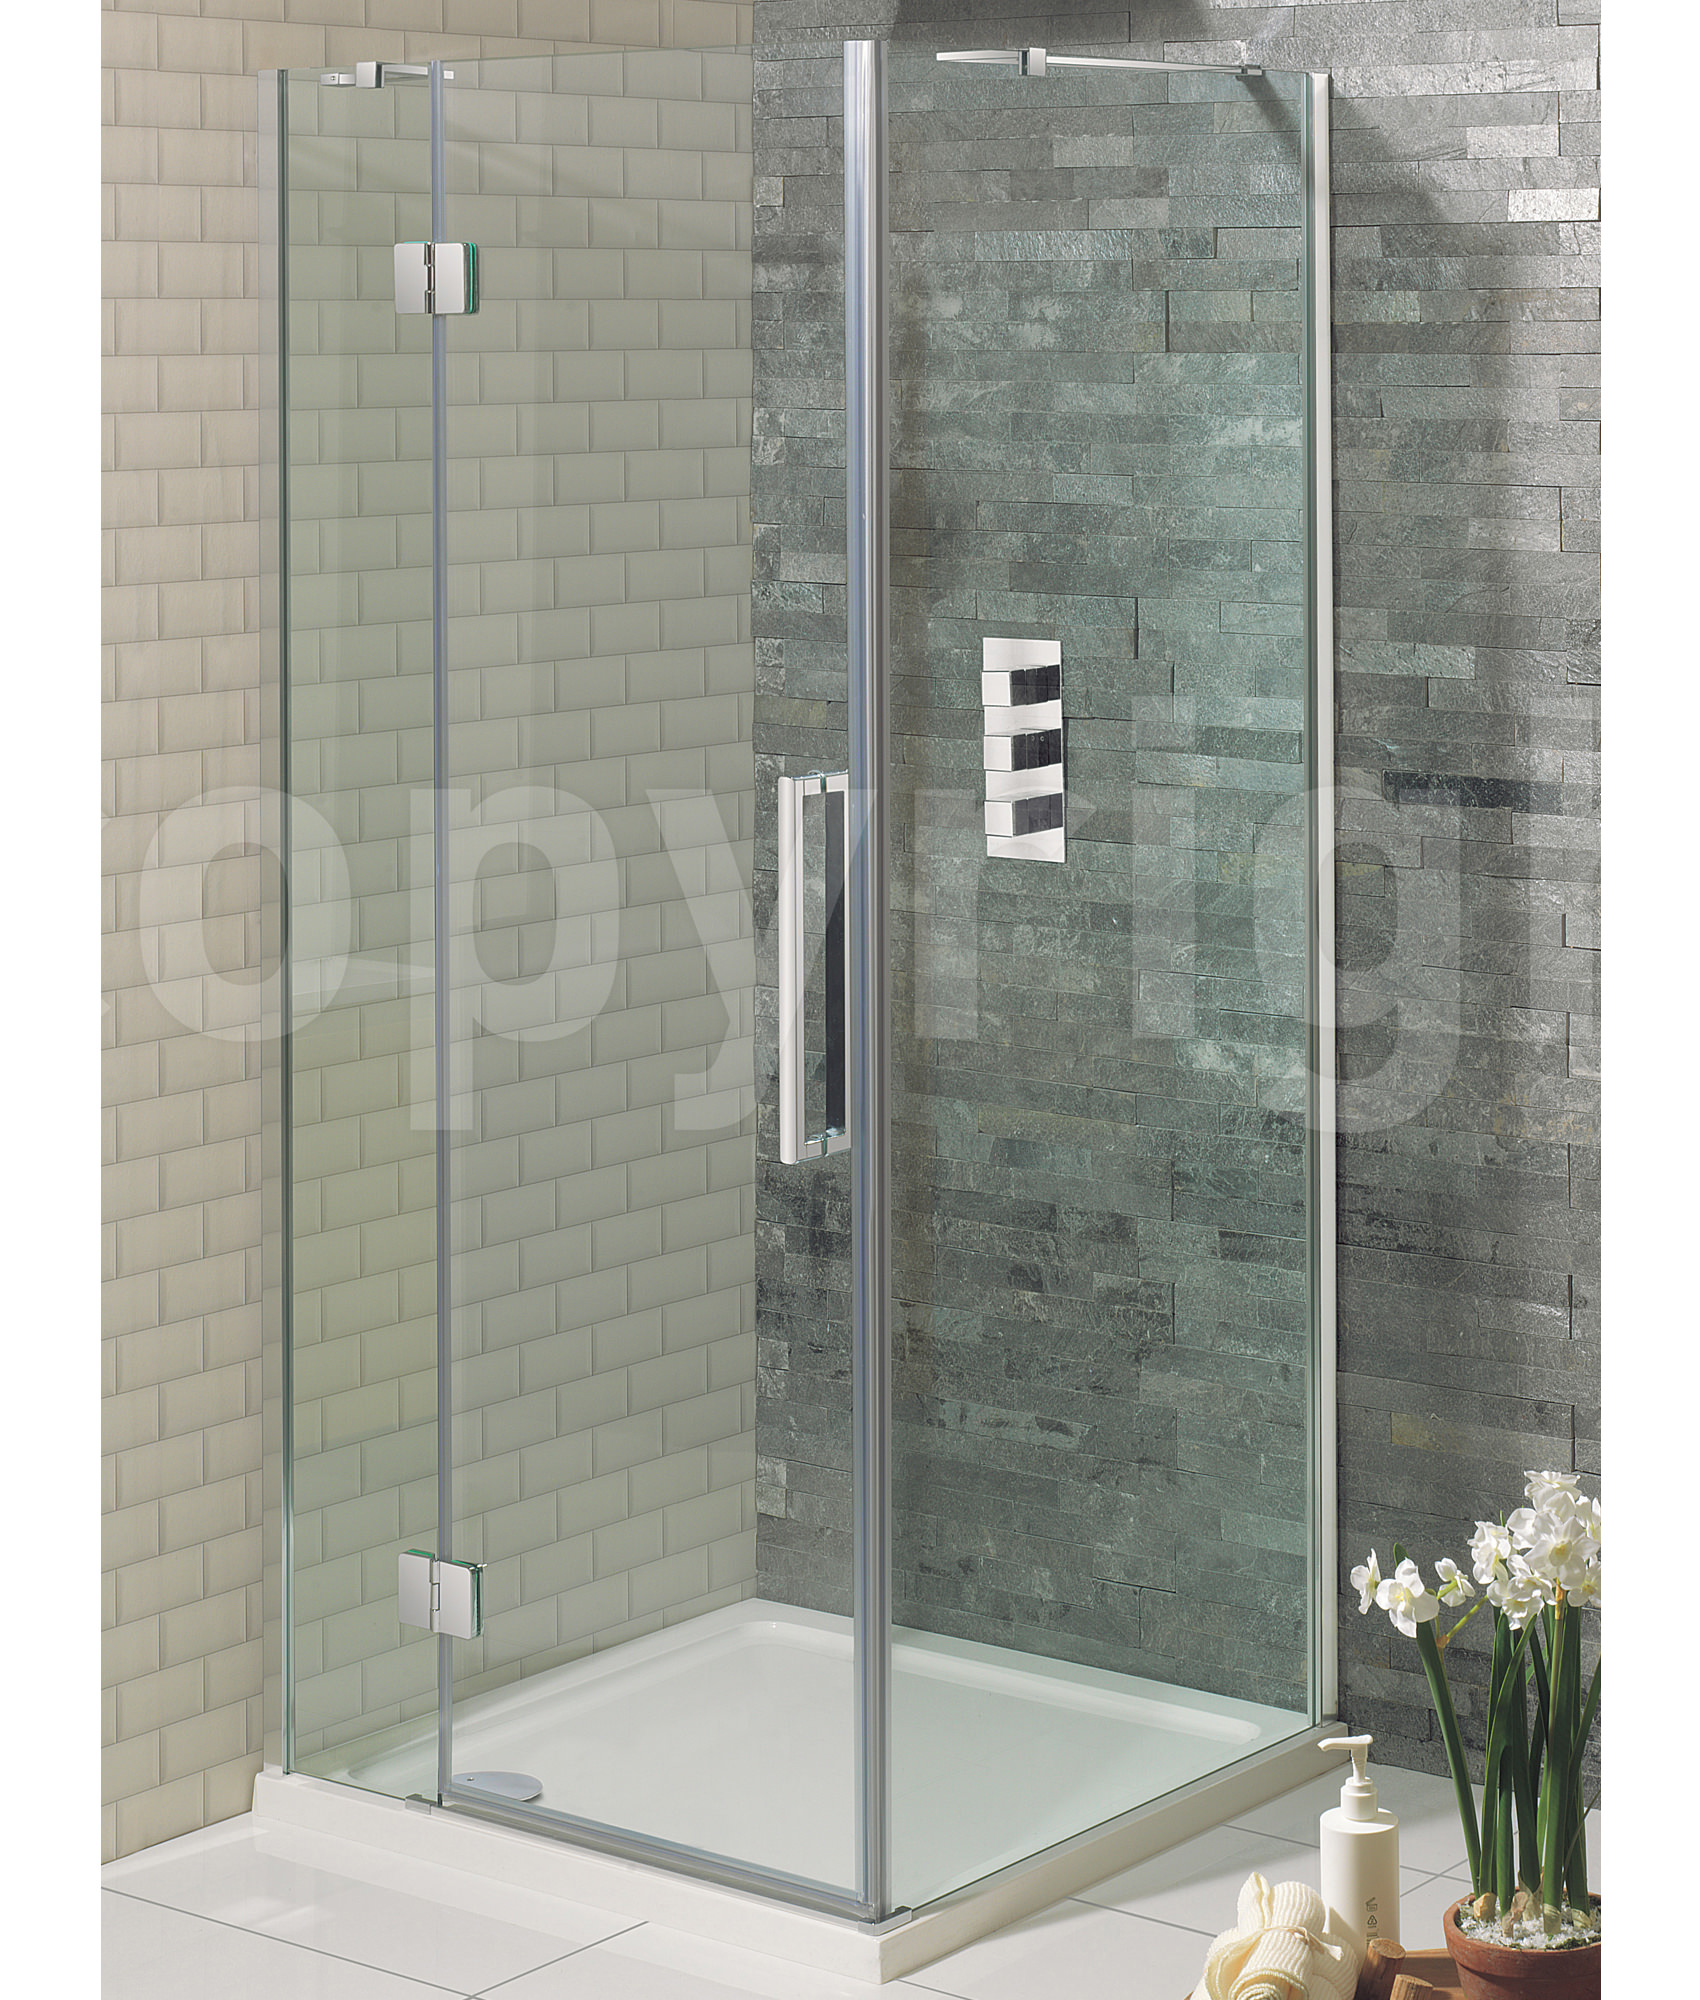 Silver mirrors for bathroom